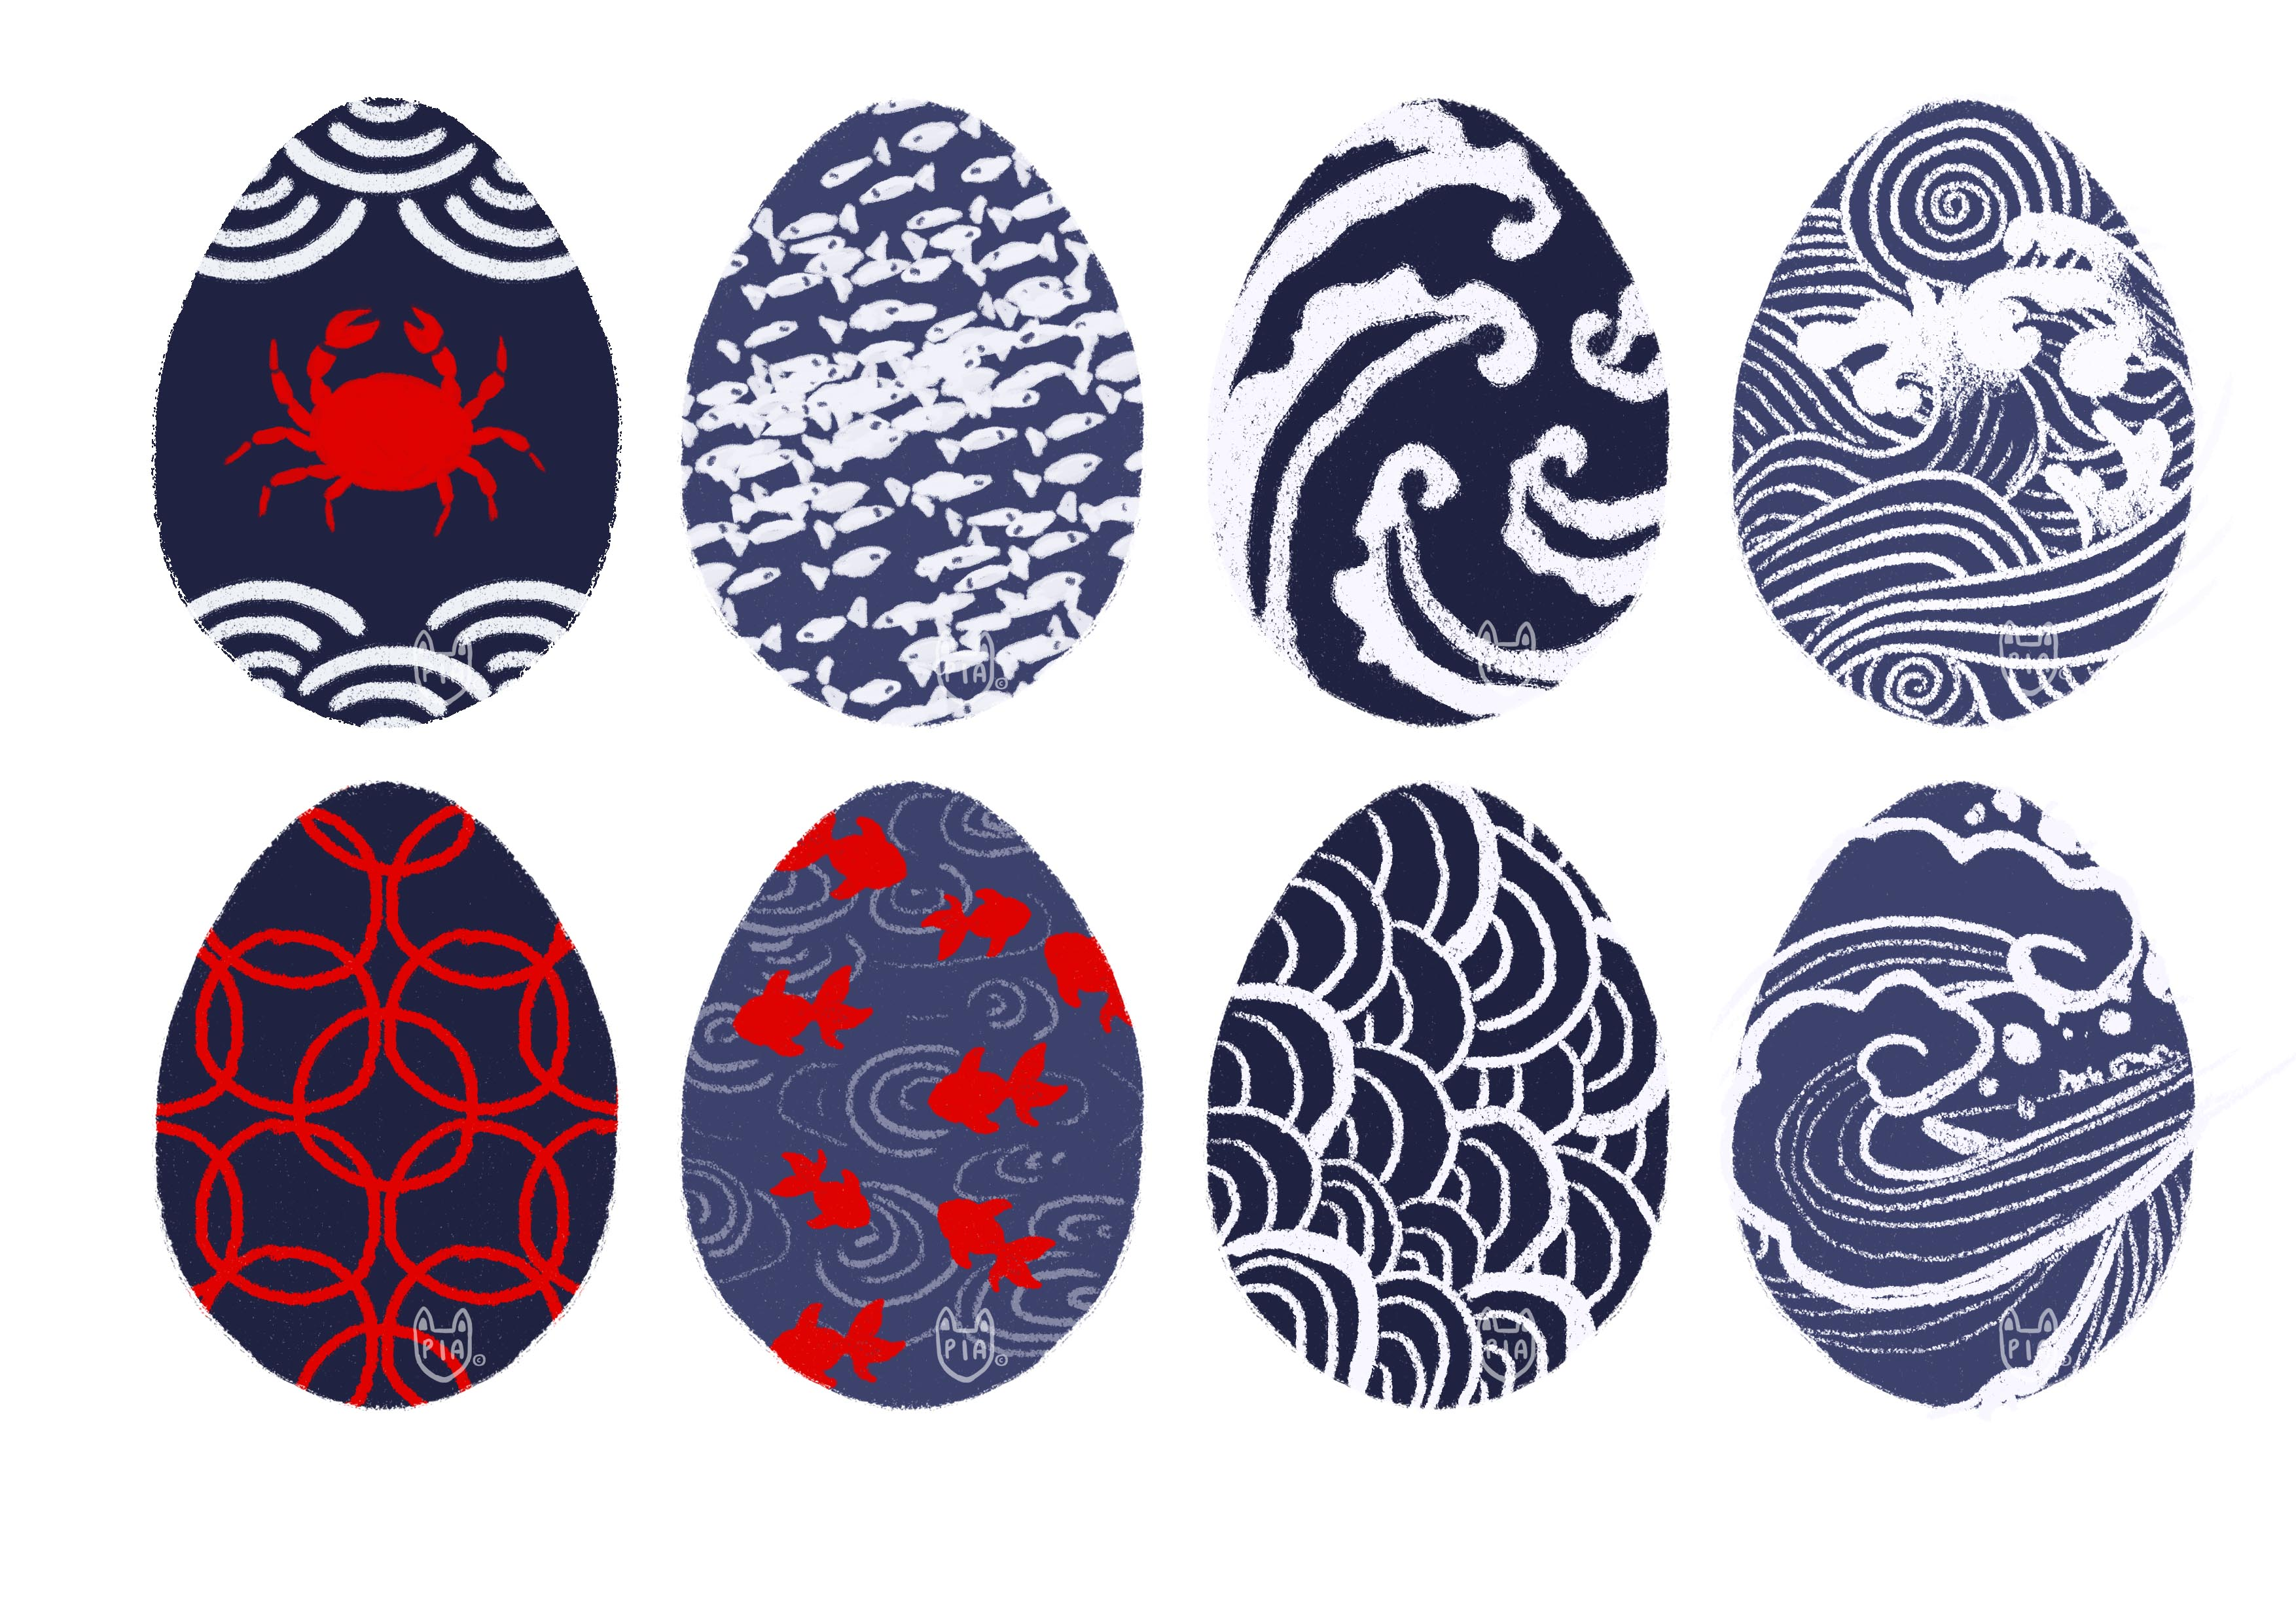 eggs with blue, white and red patterns